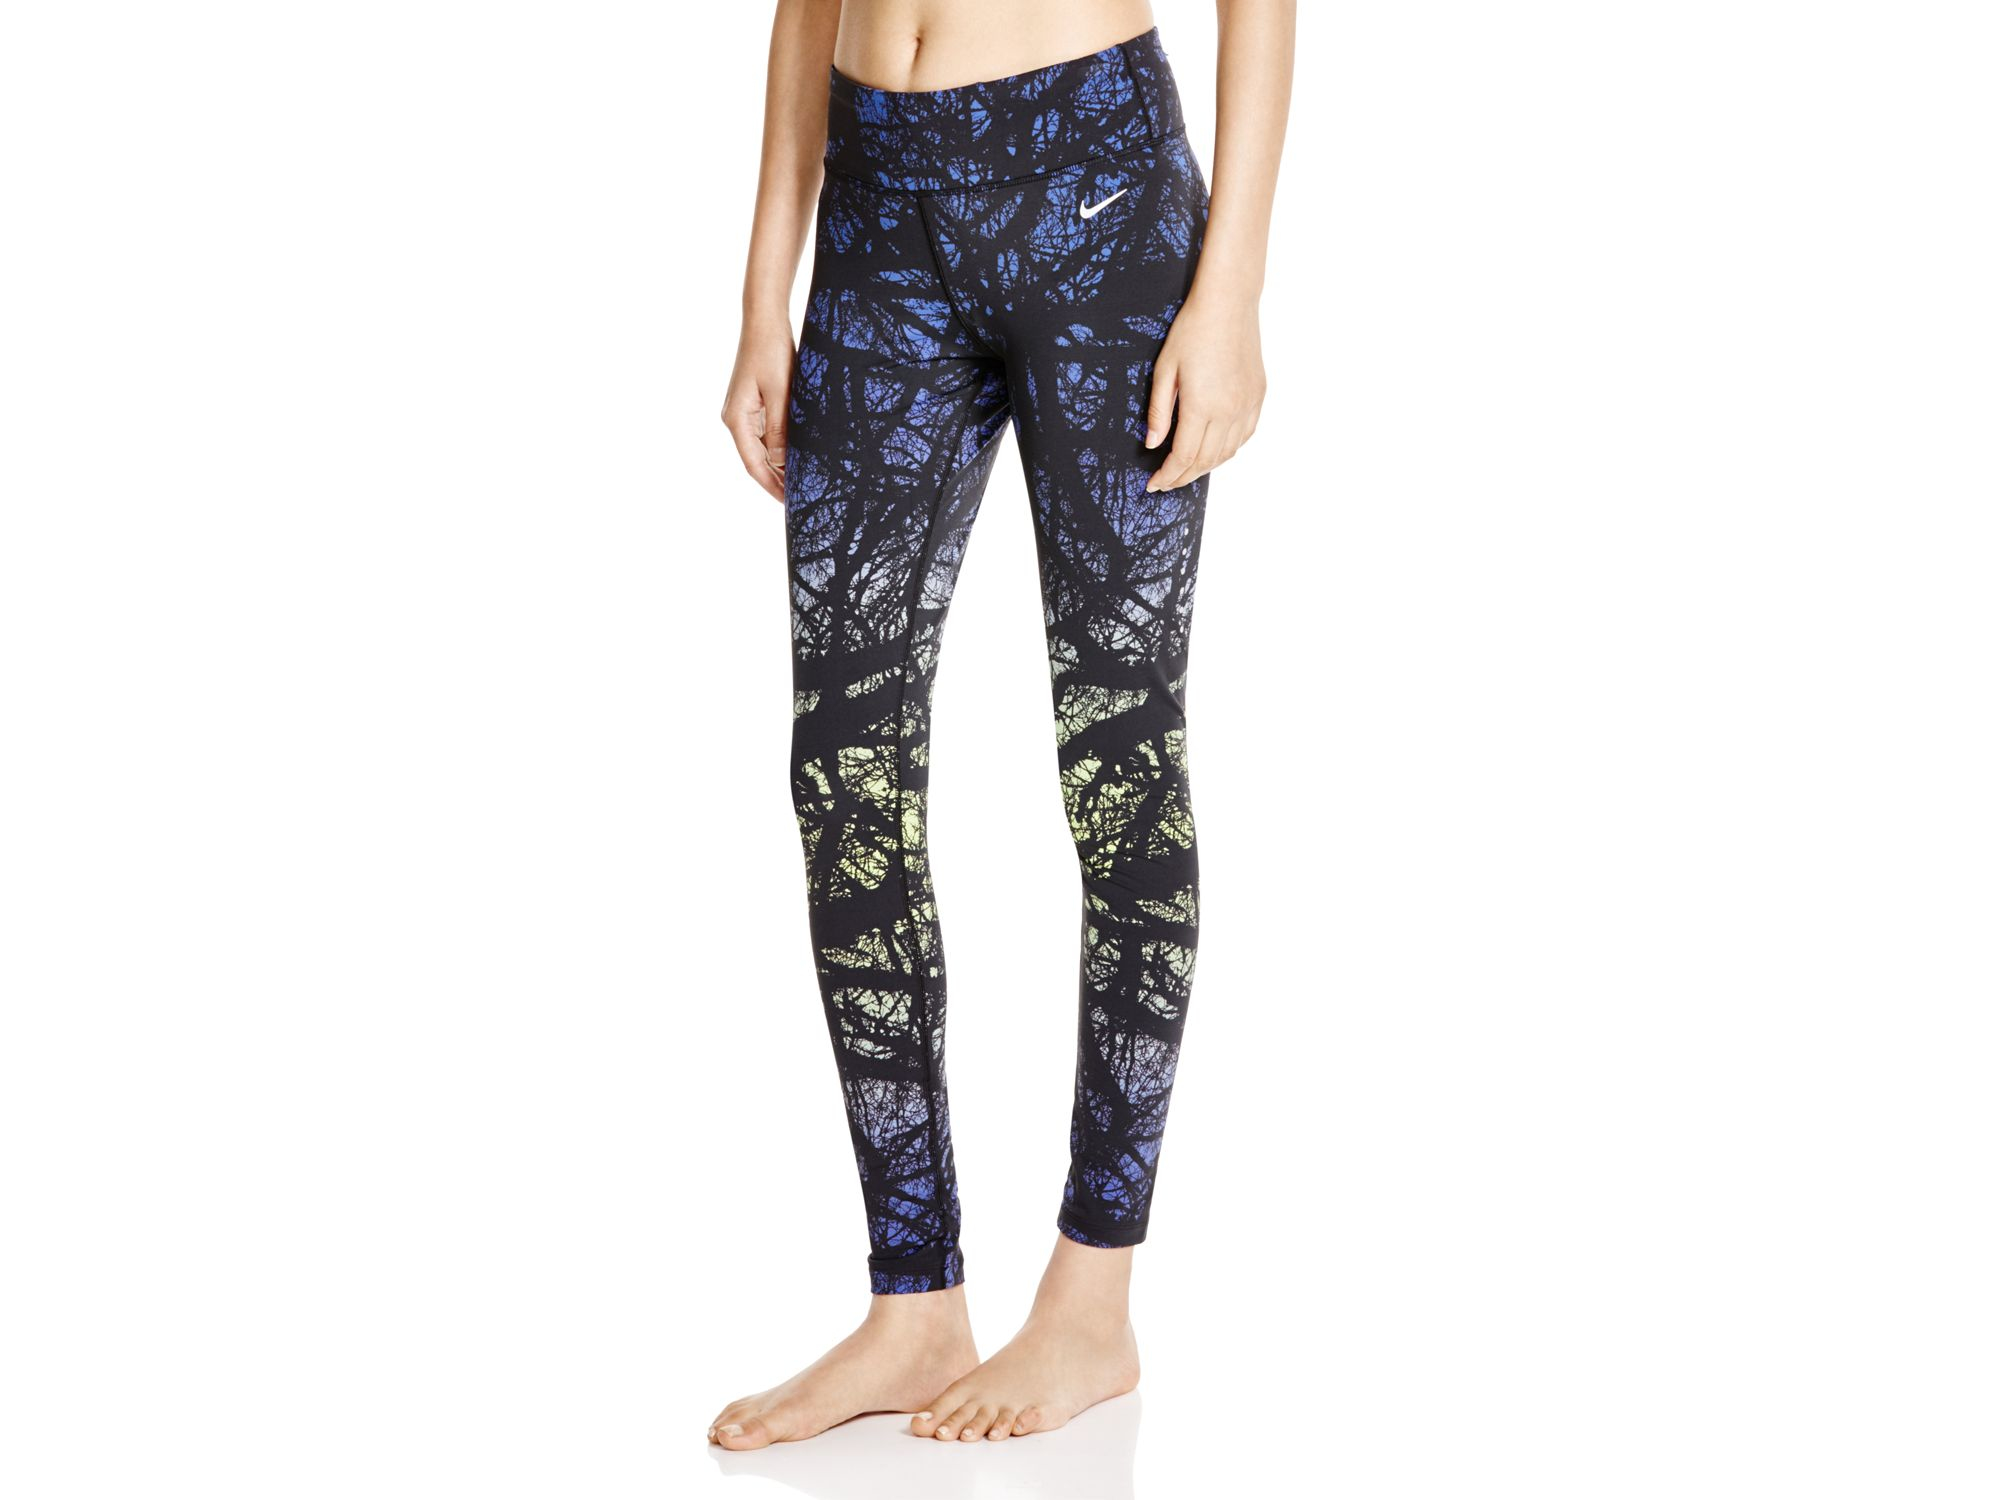 Lyst - Nike Printed Leggings in Blue 82c17a19d